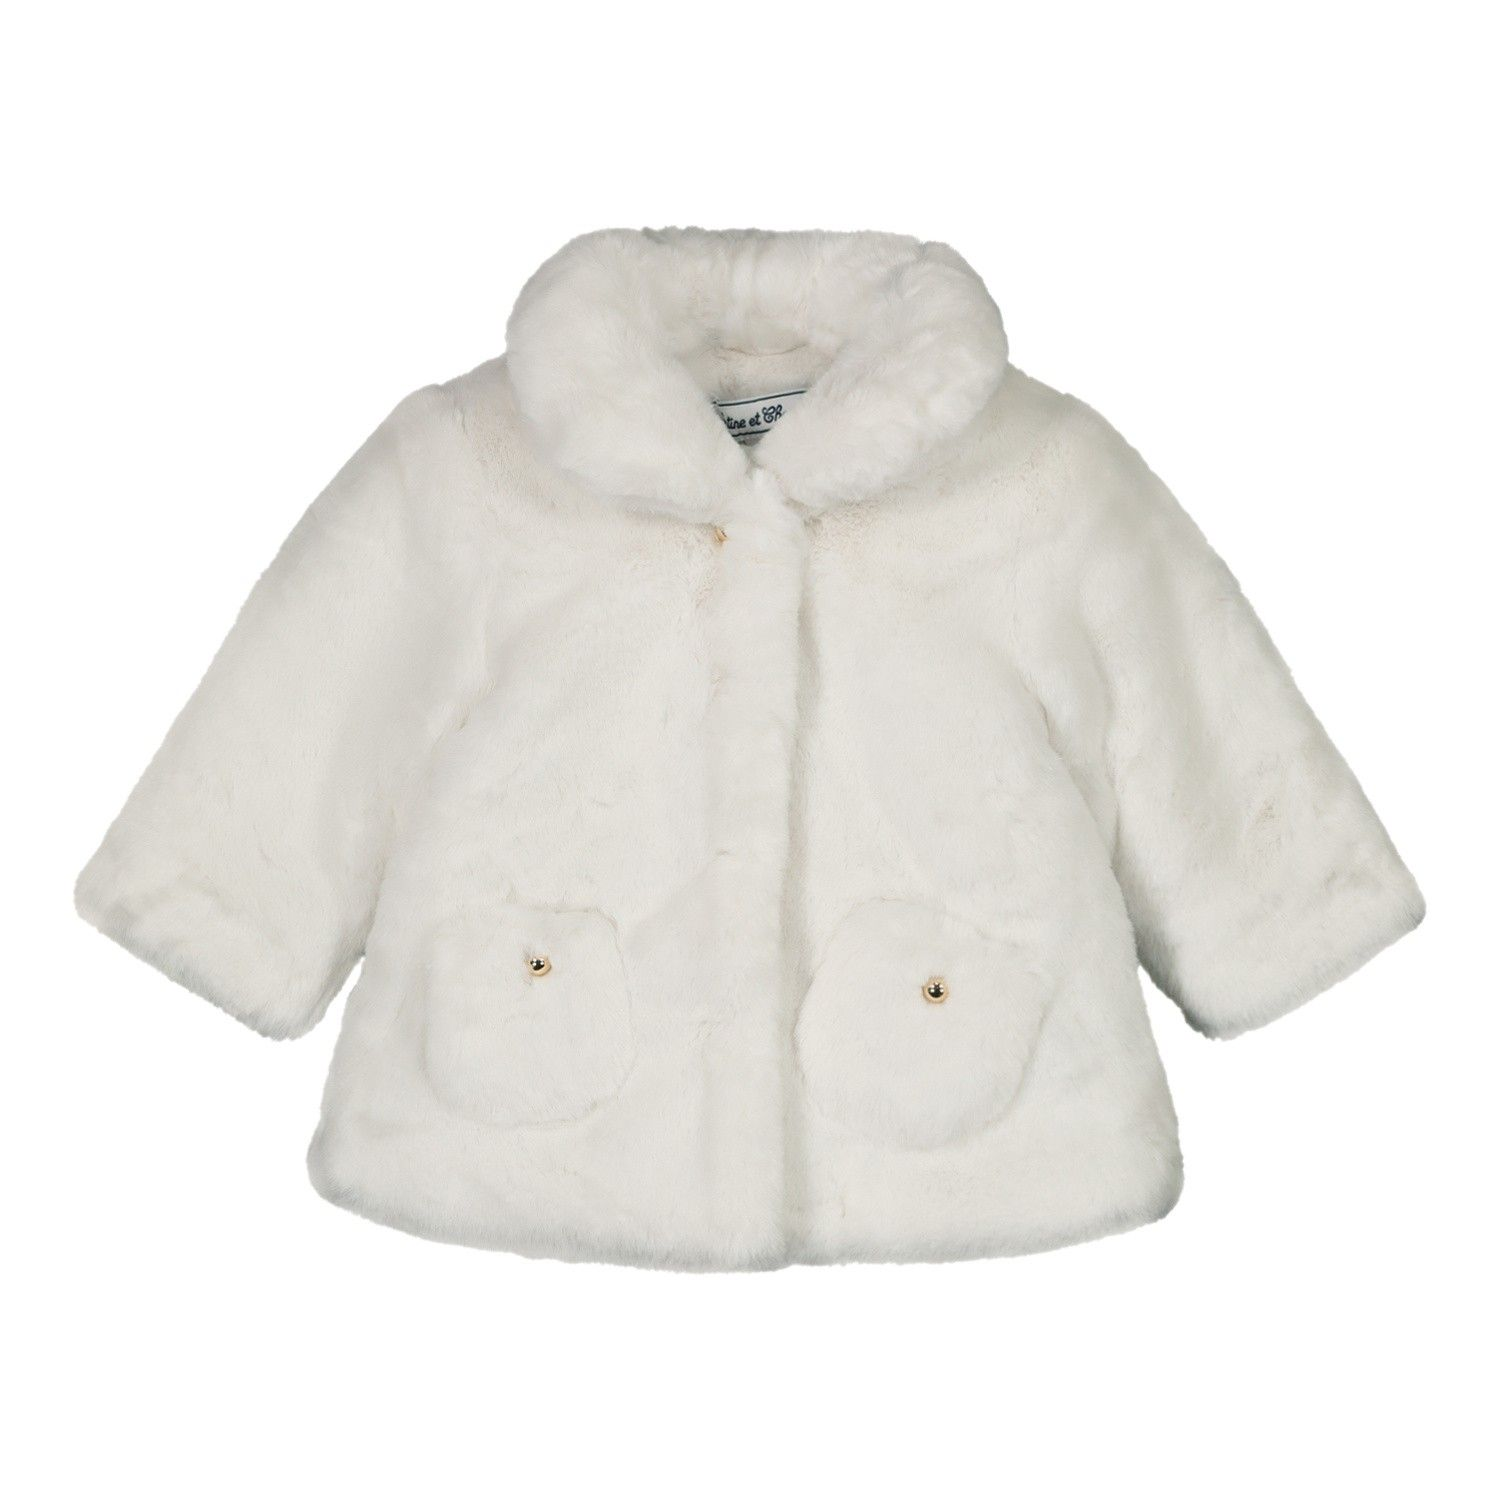 Picture of Tartine et Chocolat TR44031 baby coat off white